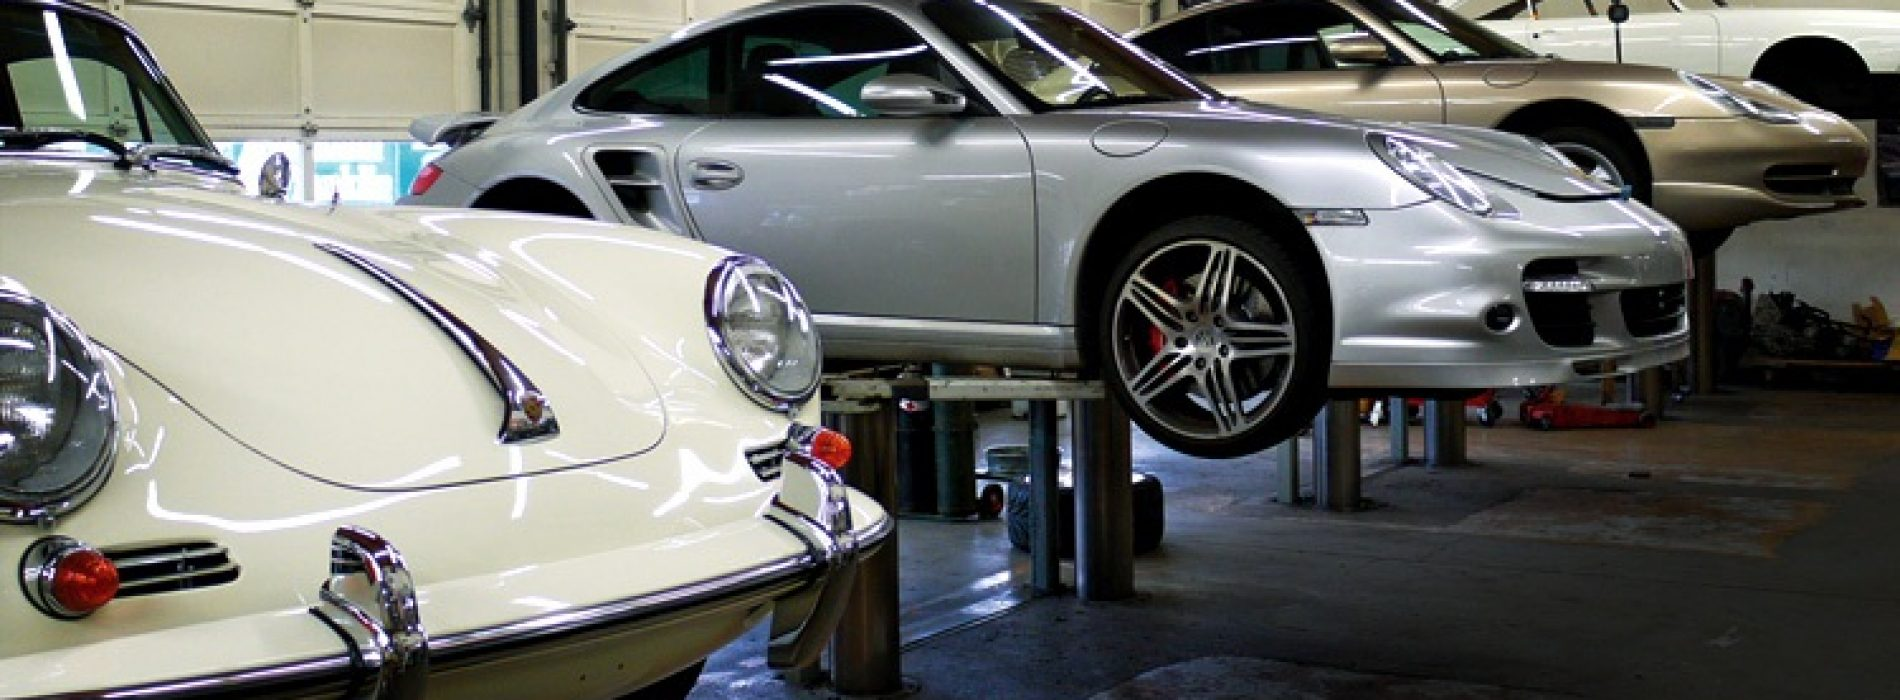 4 Things to Do Before You Request Professional Pre-Purchase Car Inspection Seattle